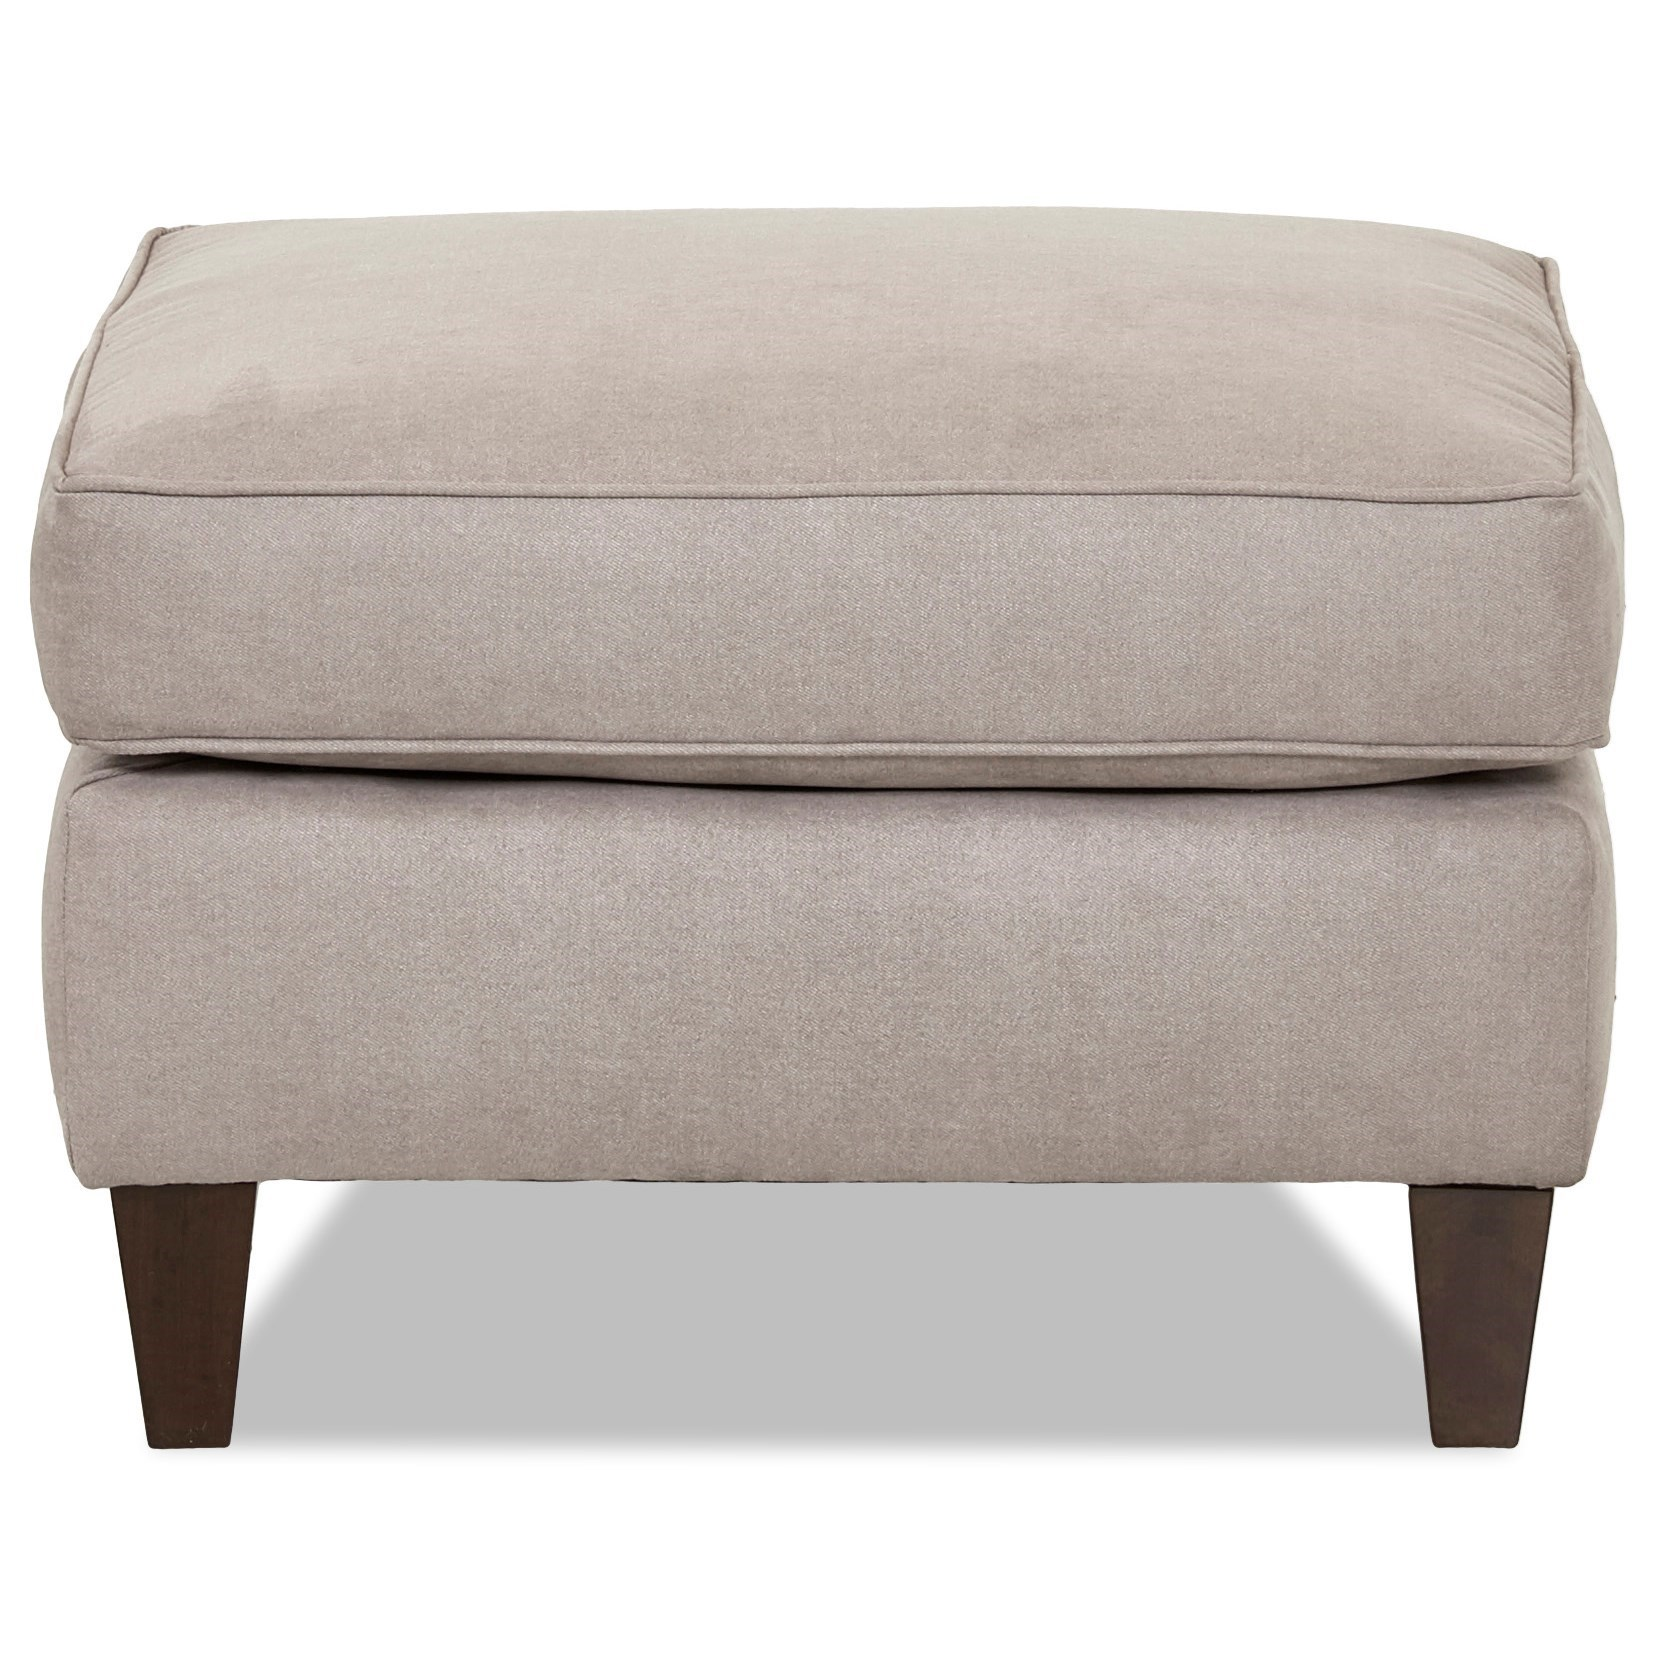 Klaussner Hopewell  HOPEWELL Ottoman - Item Number: K17200 OTTO